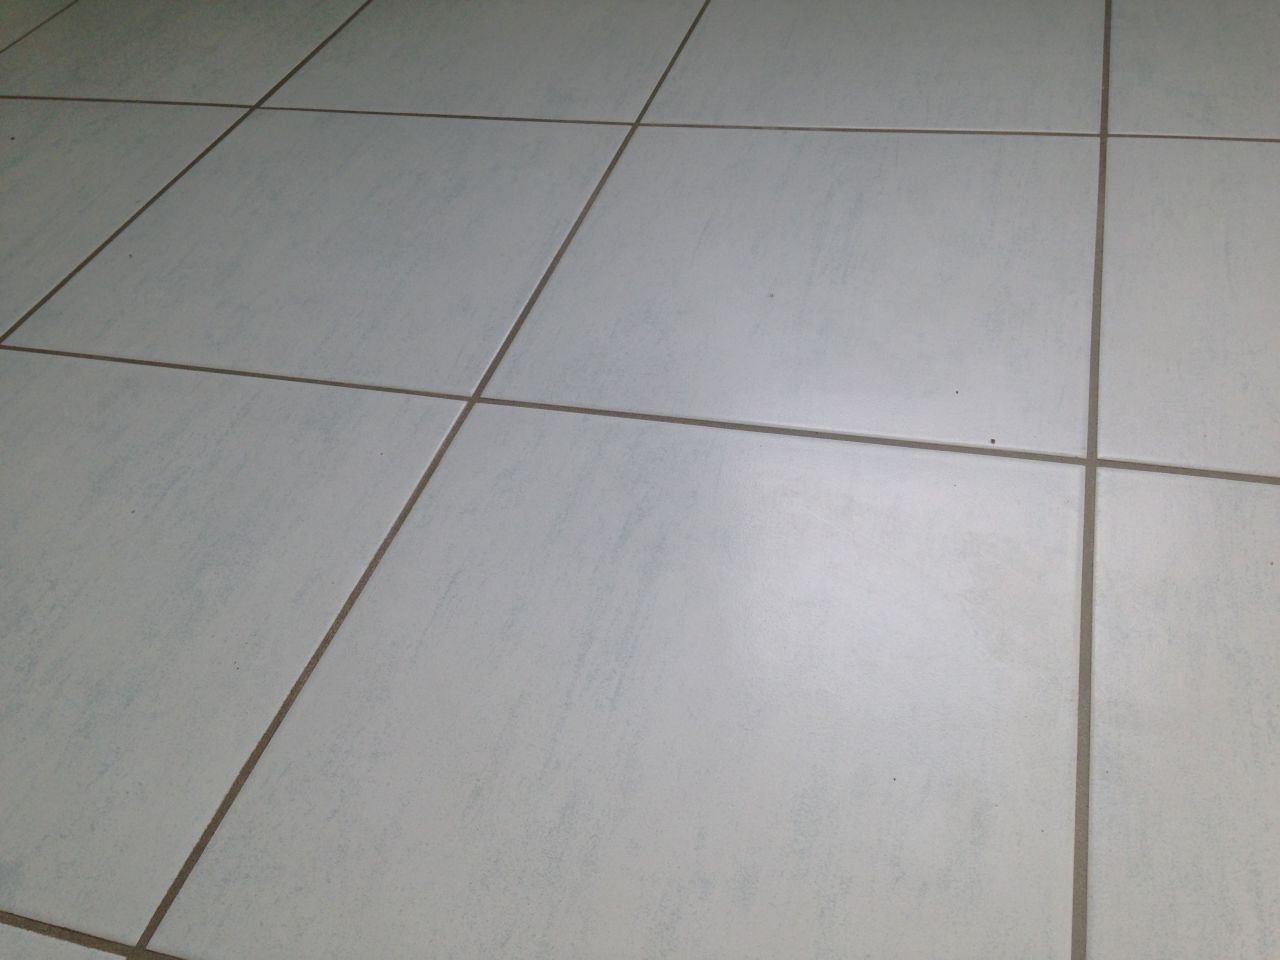 Carrelage fini hericy seine et marne for Carrelage blanc joint blanc